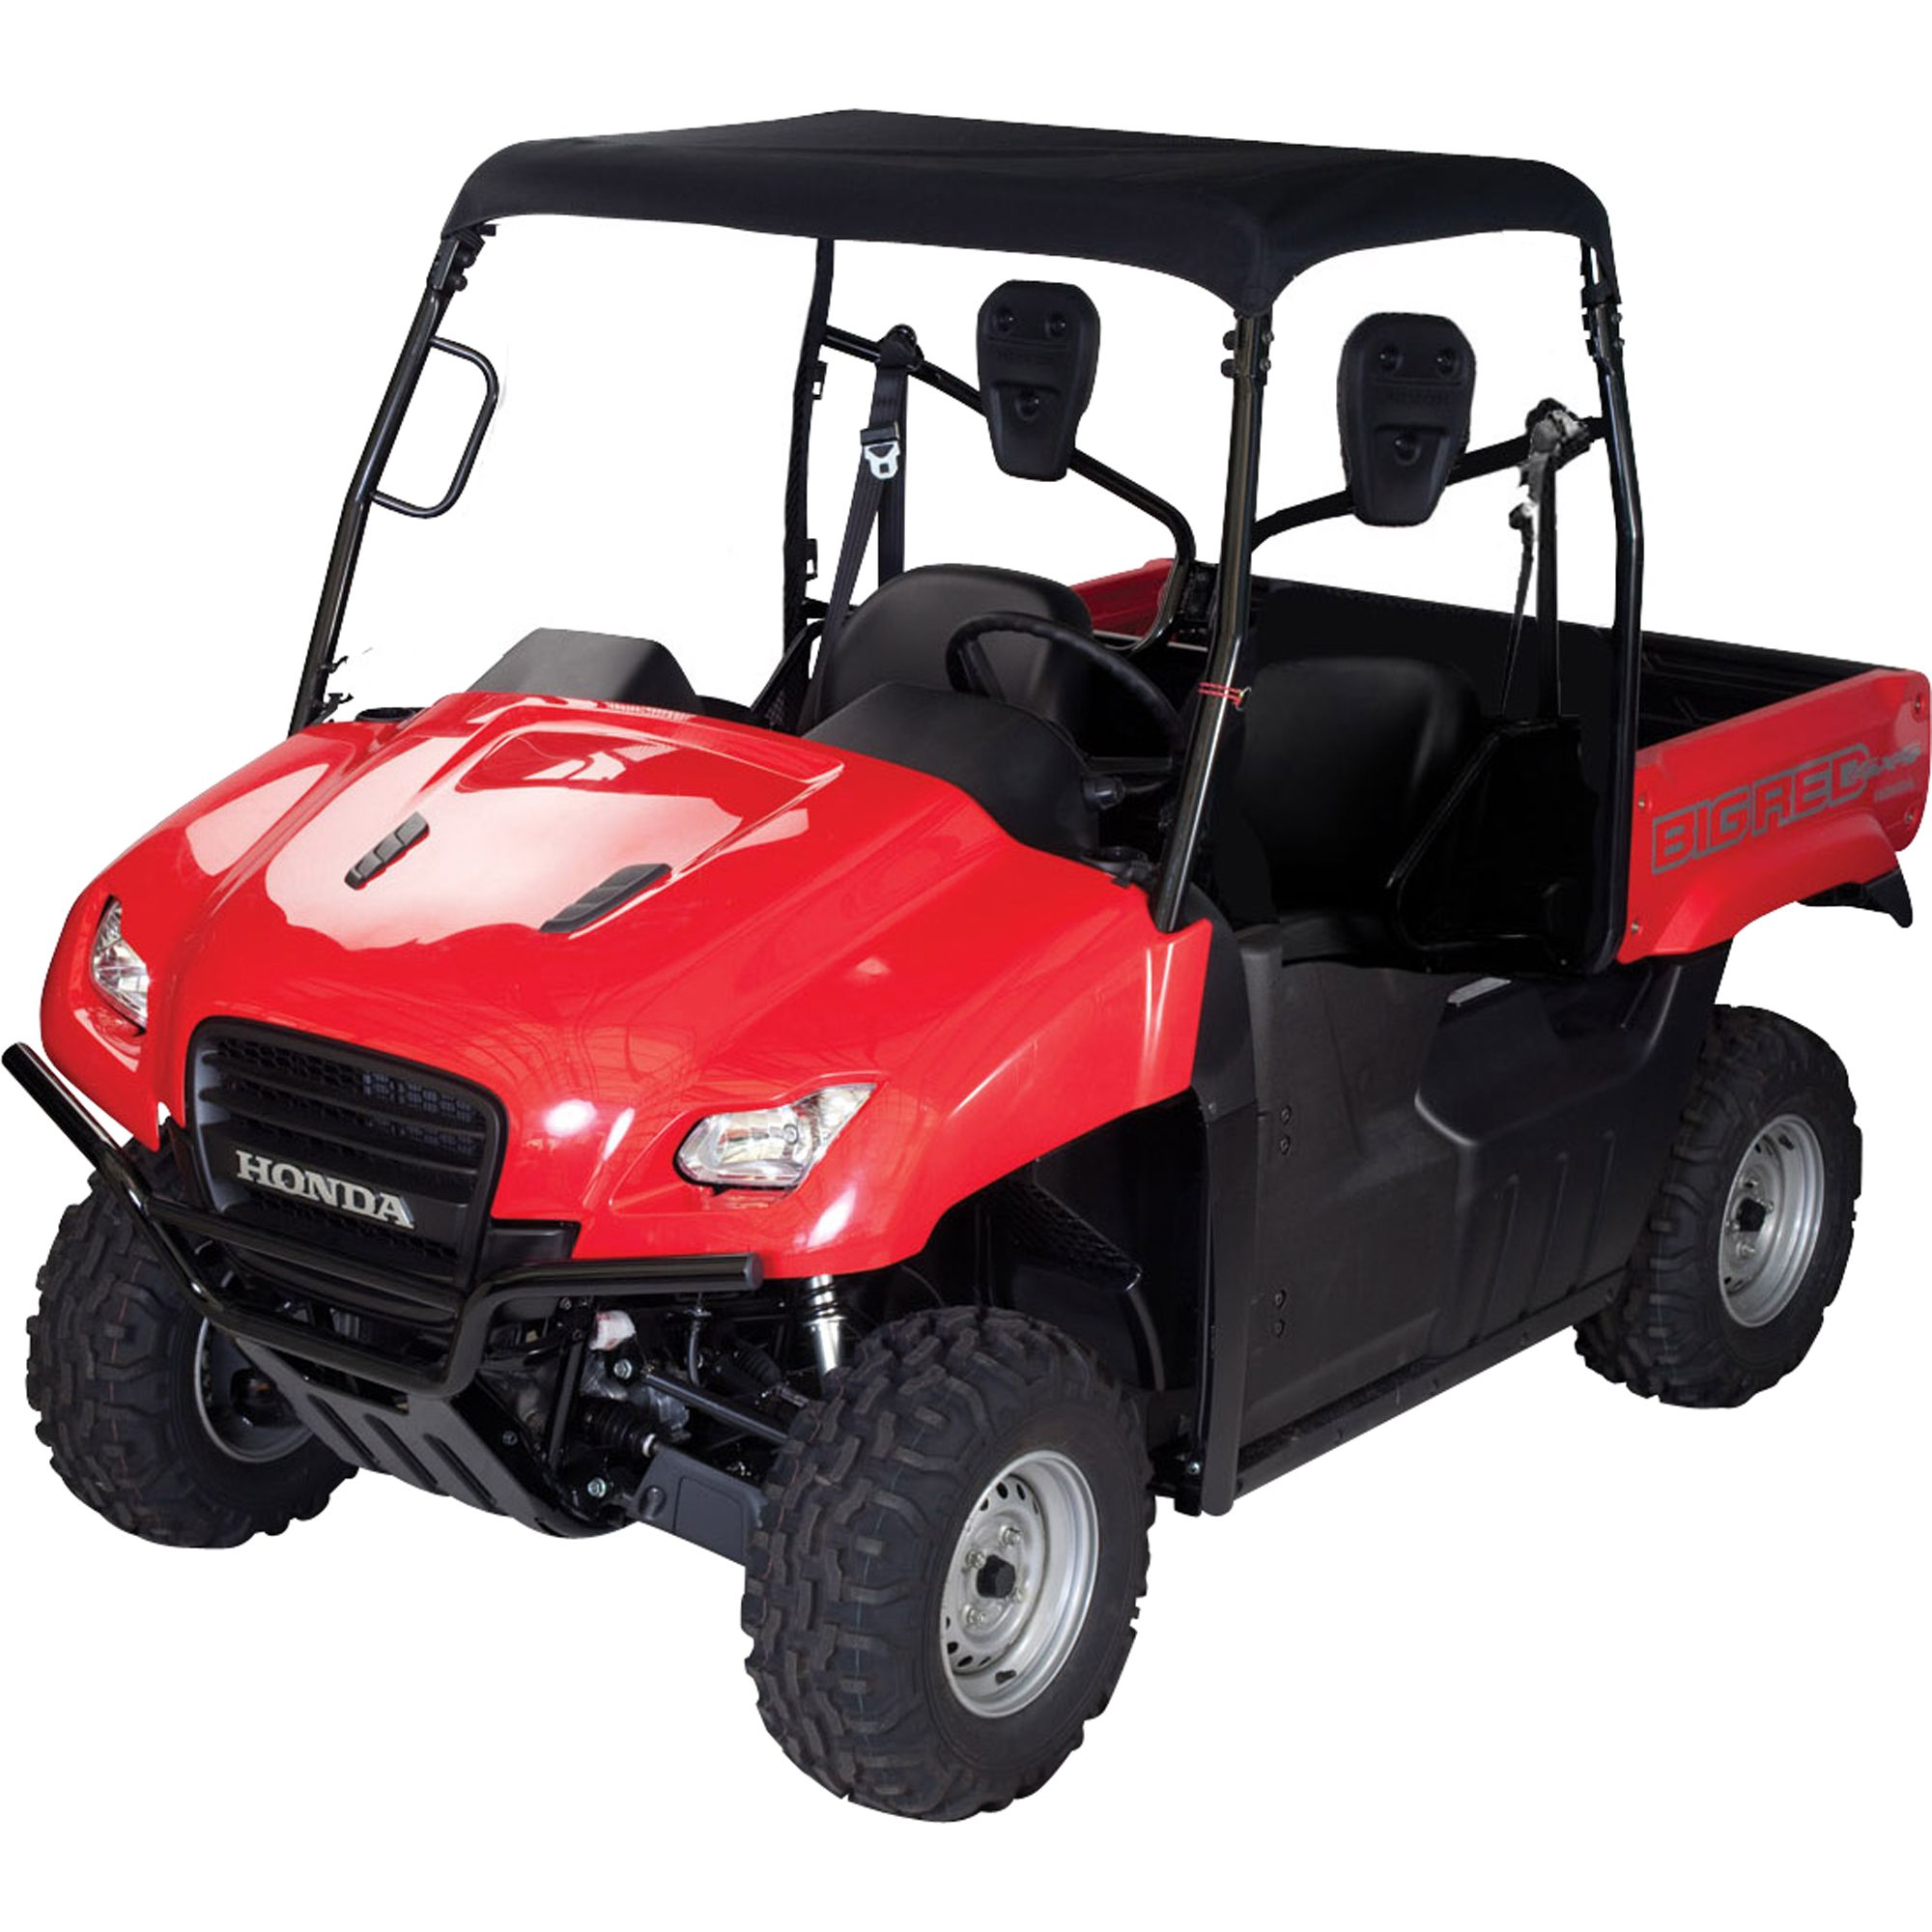 KAWASAKI Mule Roll Cage Top - Black